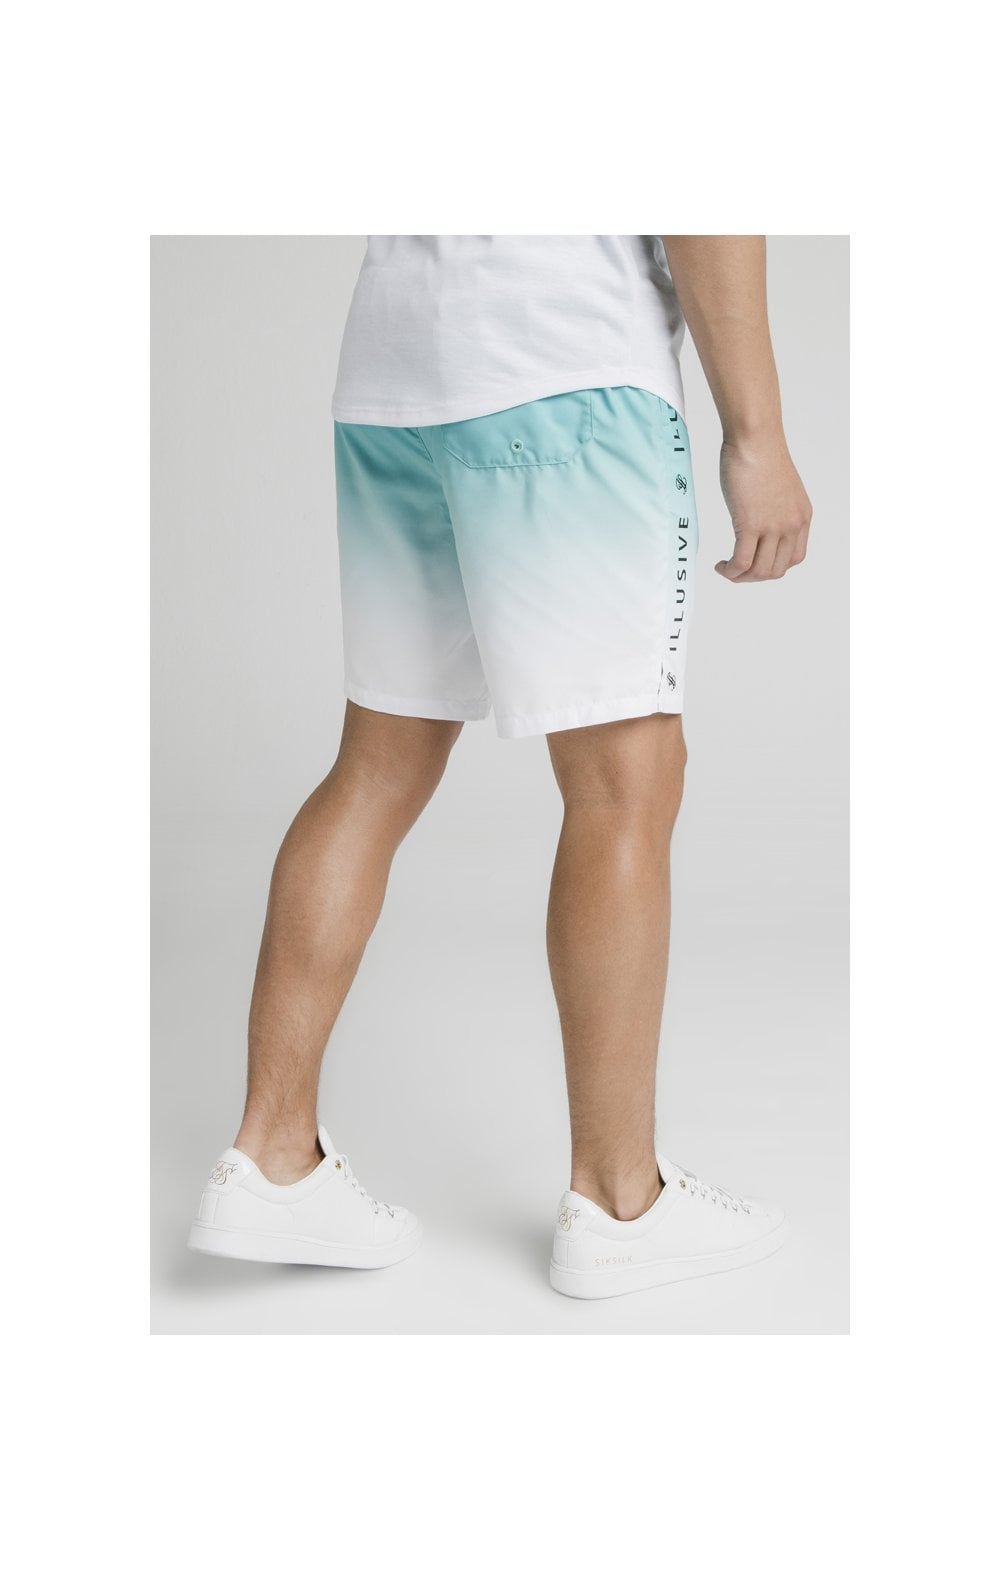 Load image into Gallery viewer, Illusive London Fade Swim Shorts - Teal & White (6)